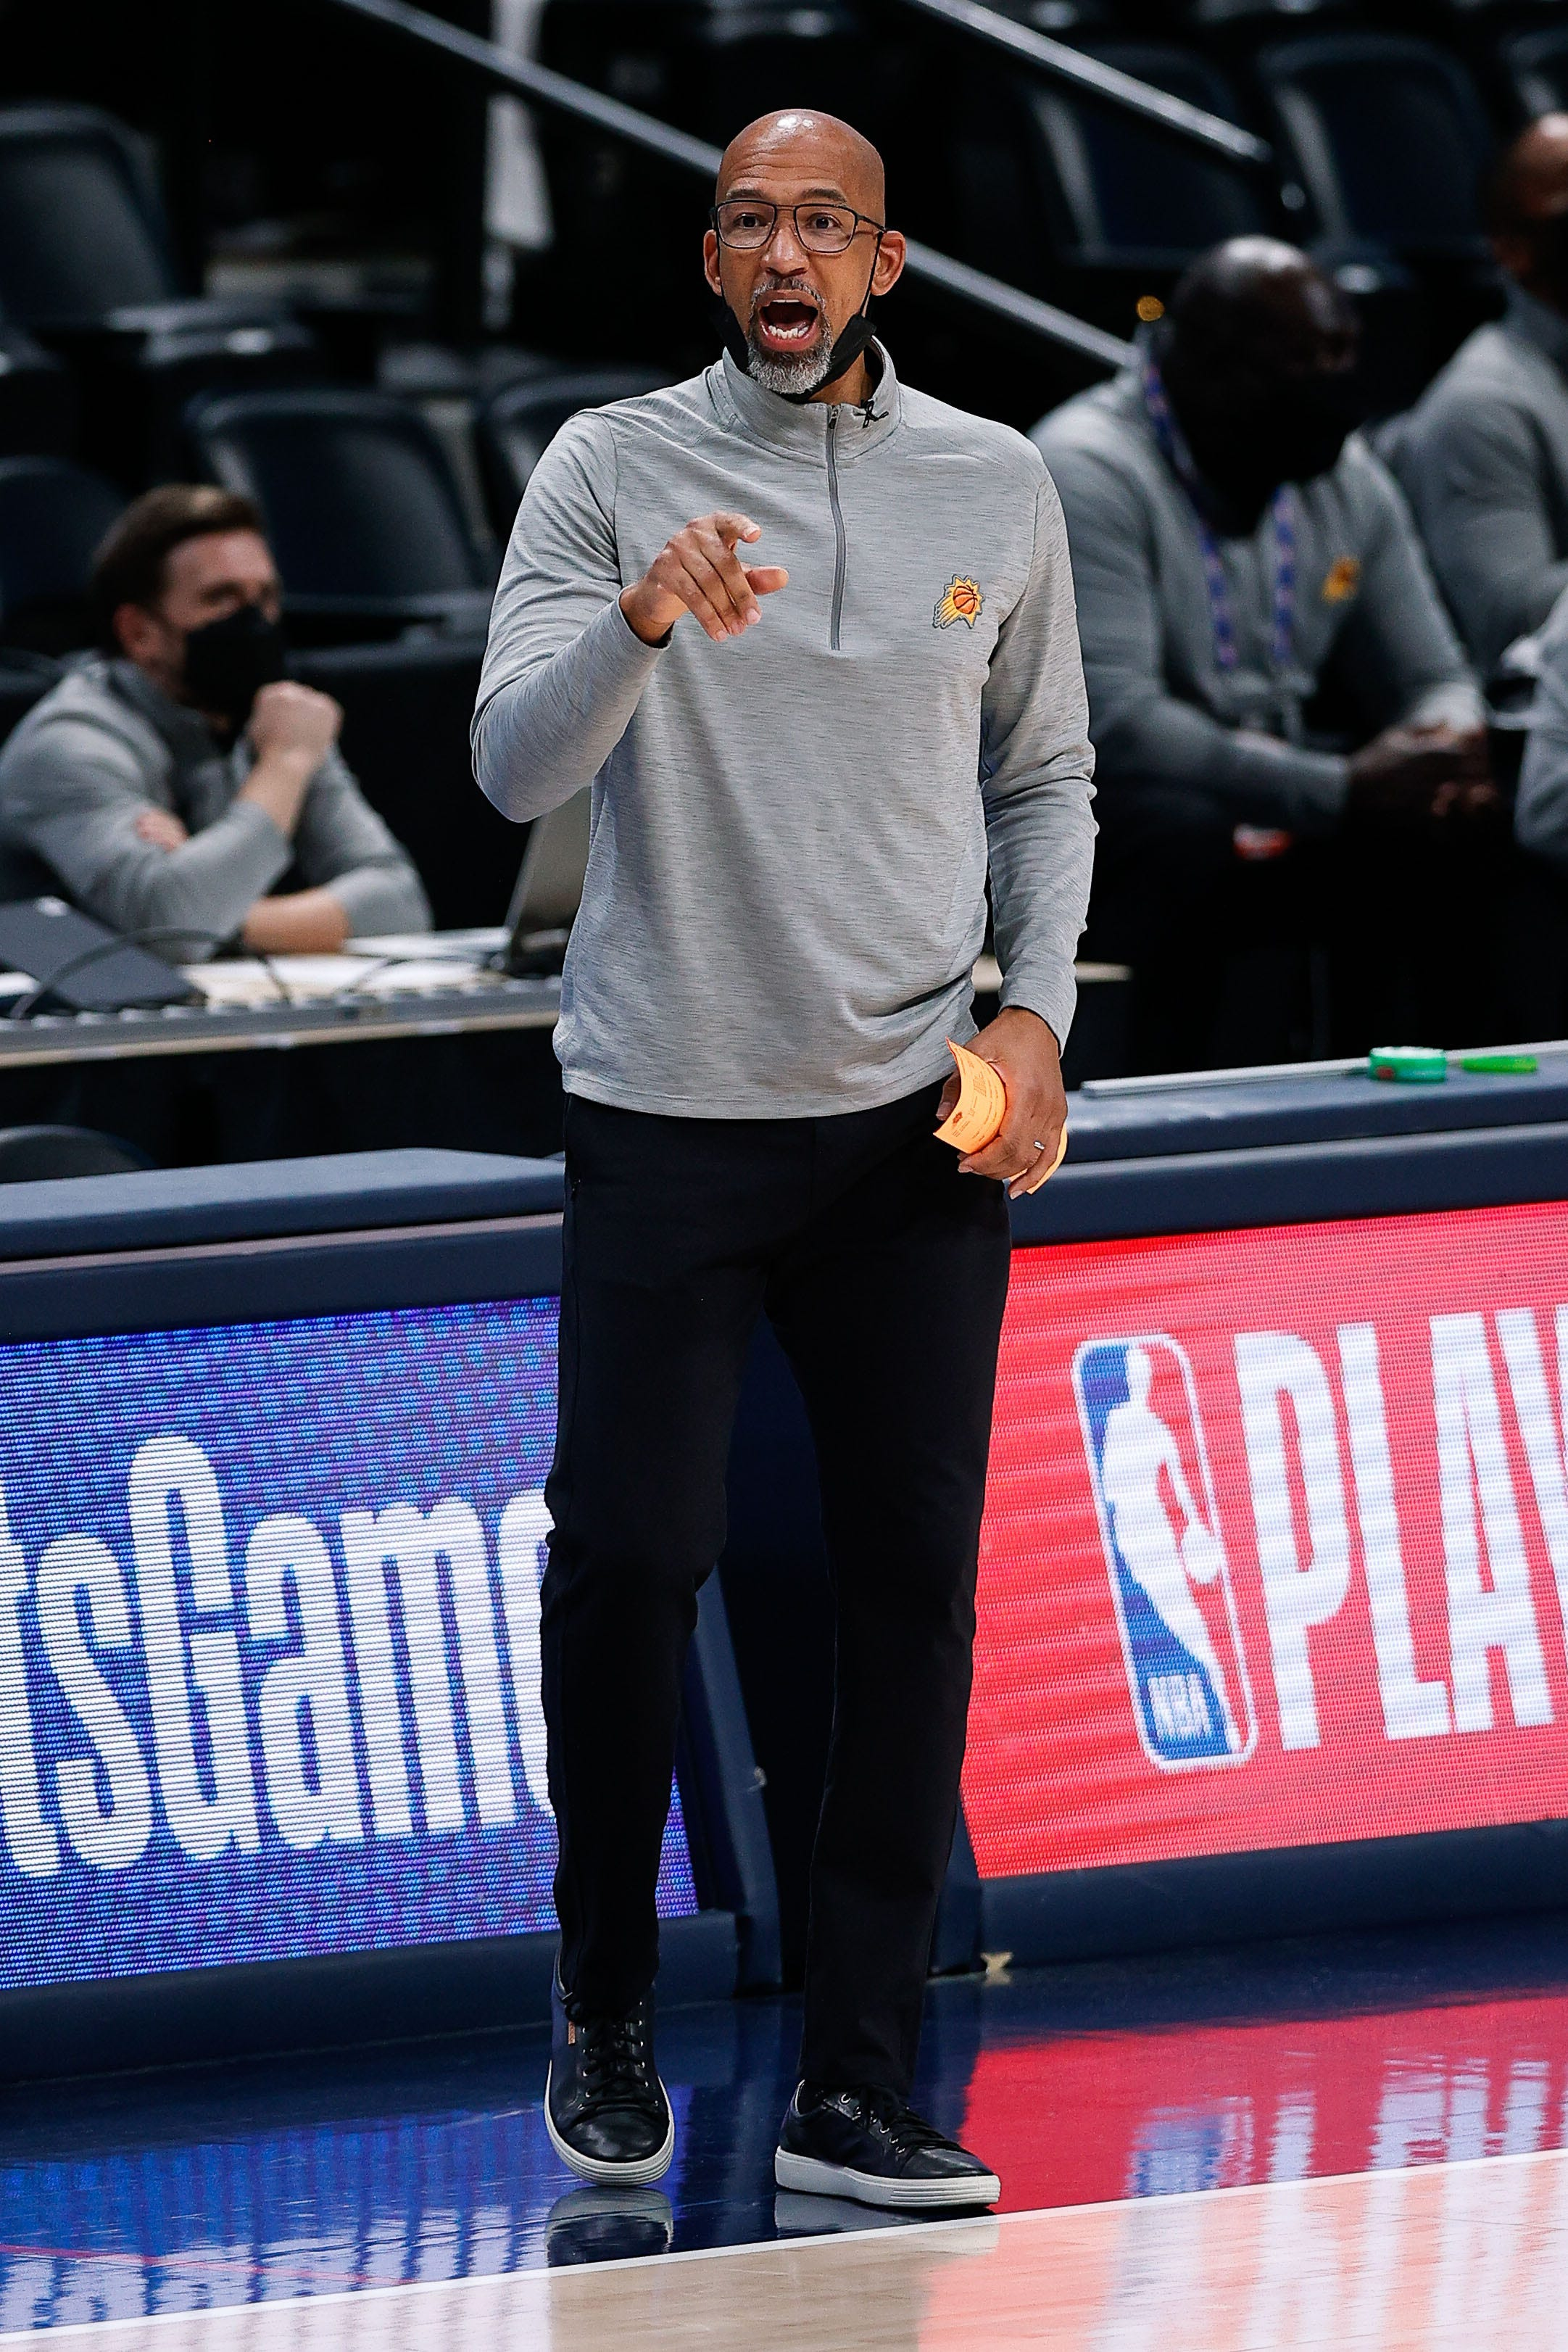 Phoenix Suns head coach Monty Williams, on how his team wasn't fazed by Nuggets' pregame ceremony